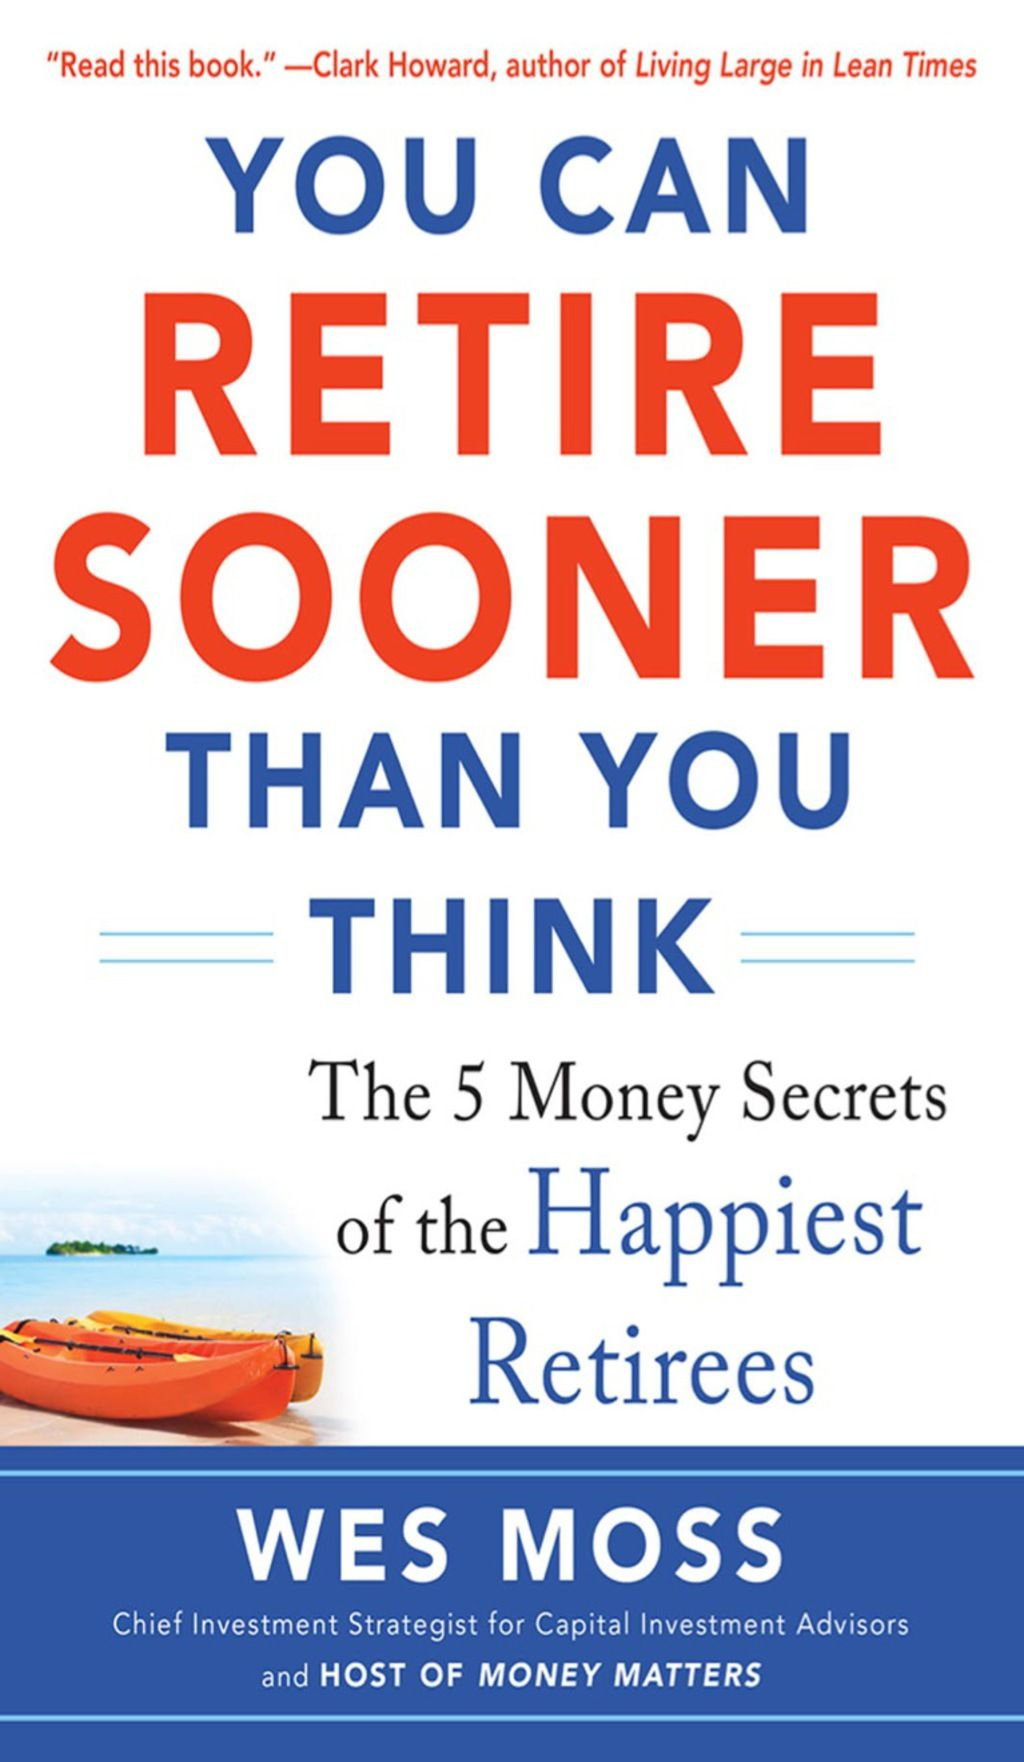 You Can Retire Sooner Than You Think Ebook Business Books